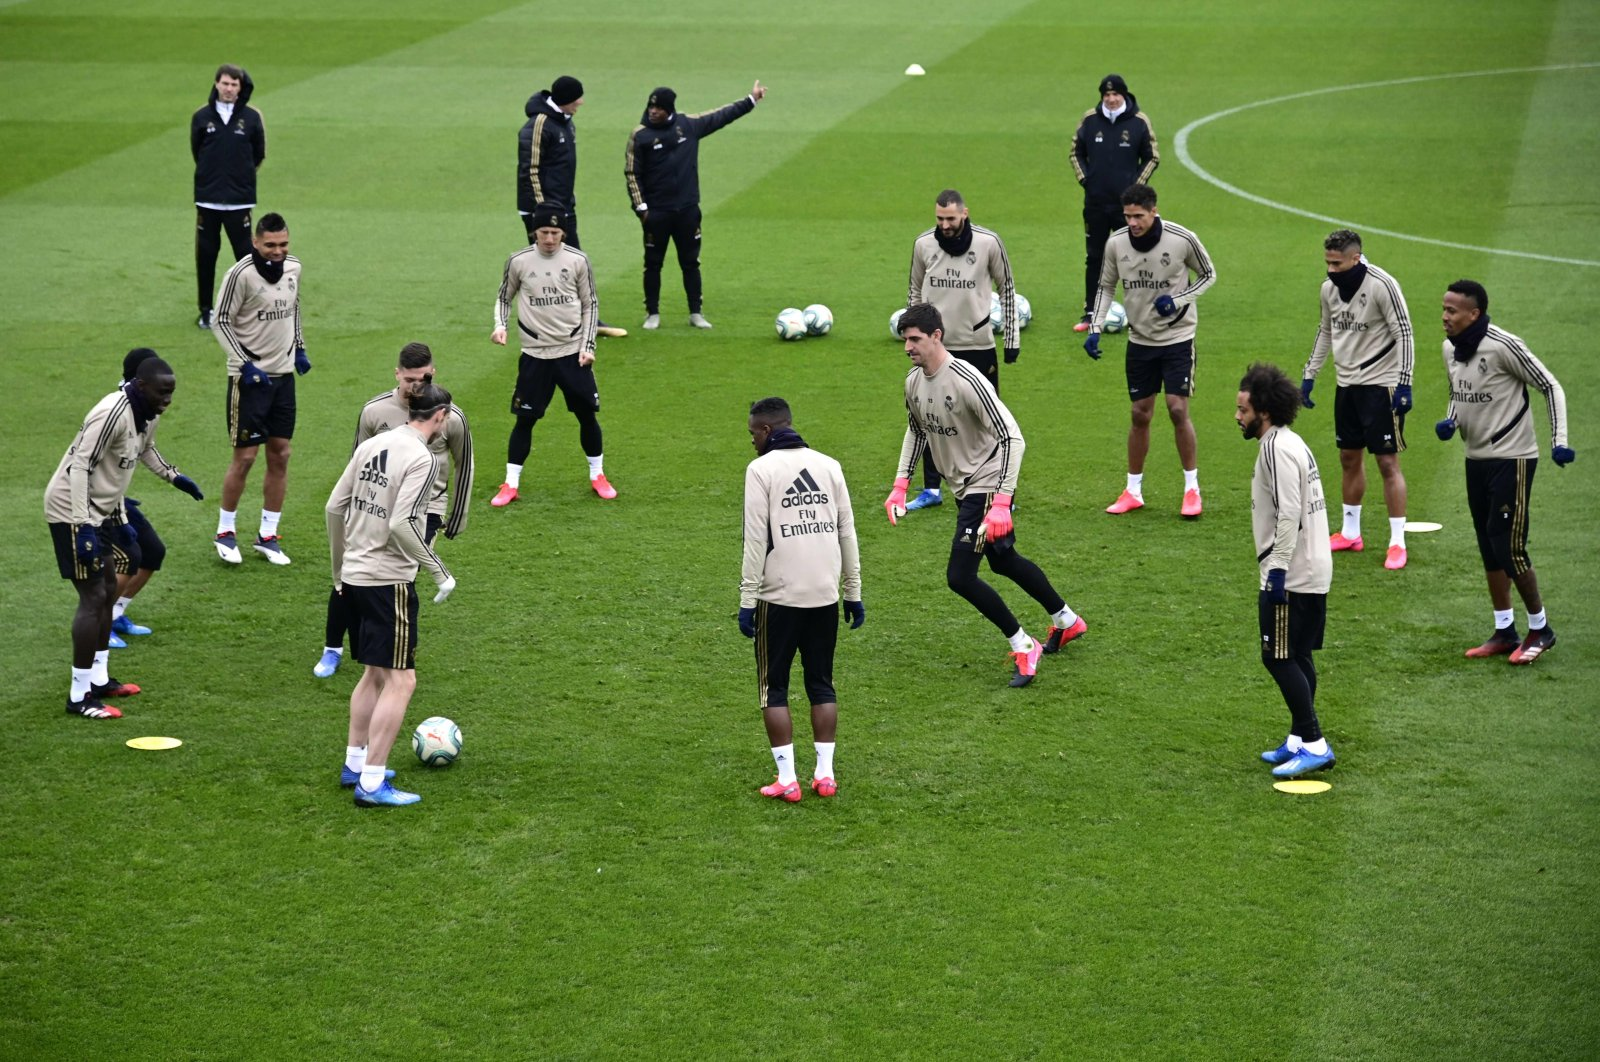 Real Madrid's players take part in a training session at the club's training ground in Valdebebas in the outskirts of Madrid on the eve of the Spanish League football match between Real Madrid and Barcelona, Feb. 29, 2020. (AFP Photo)